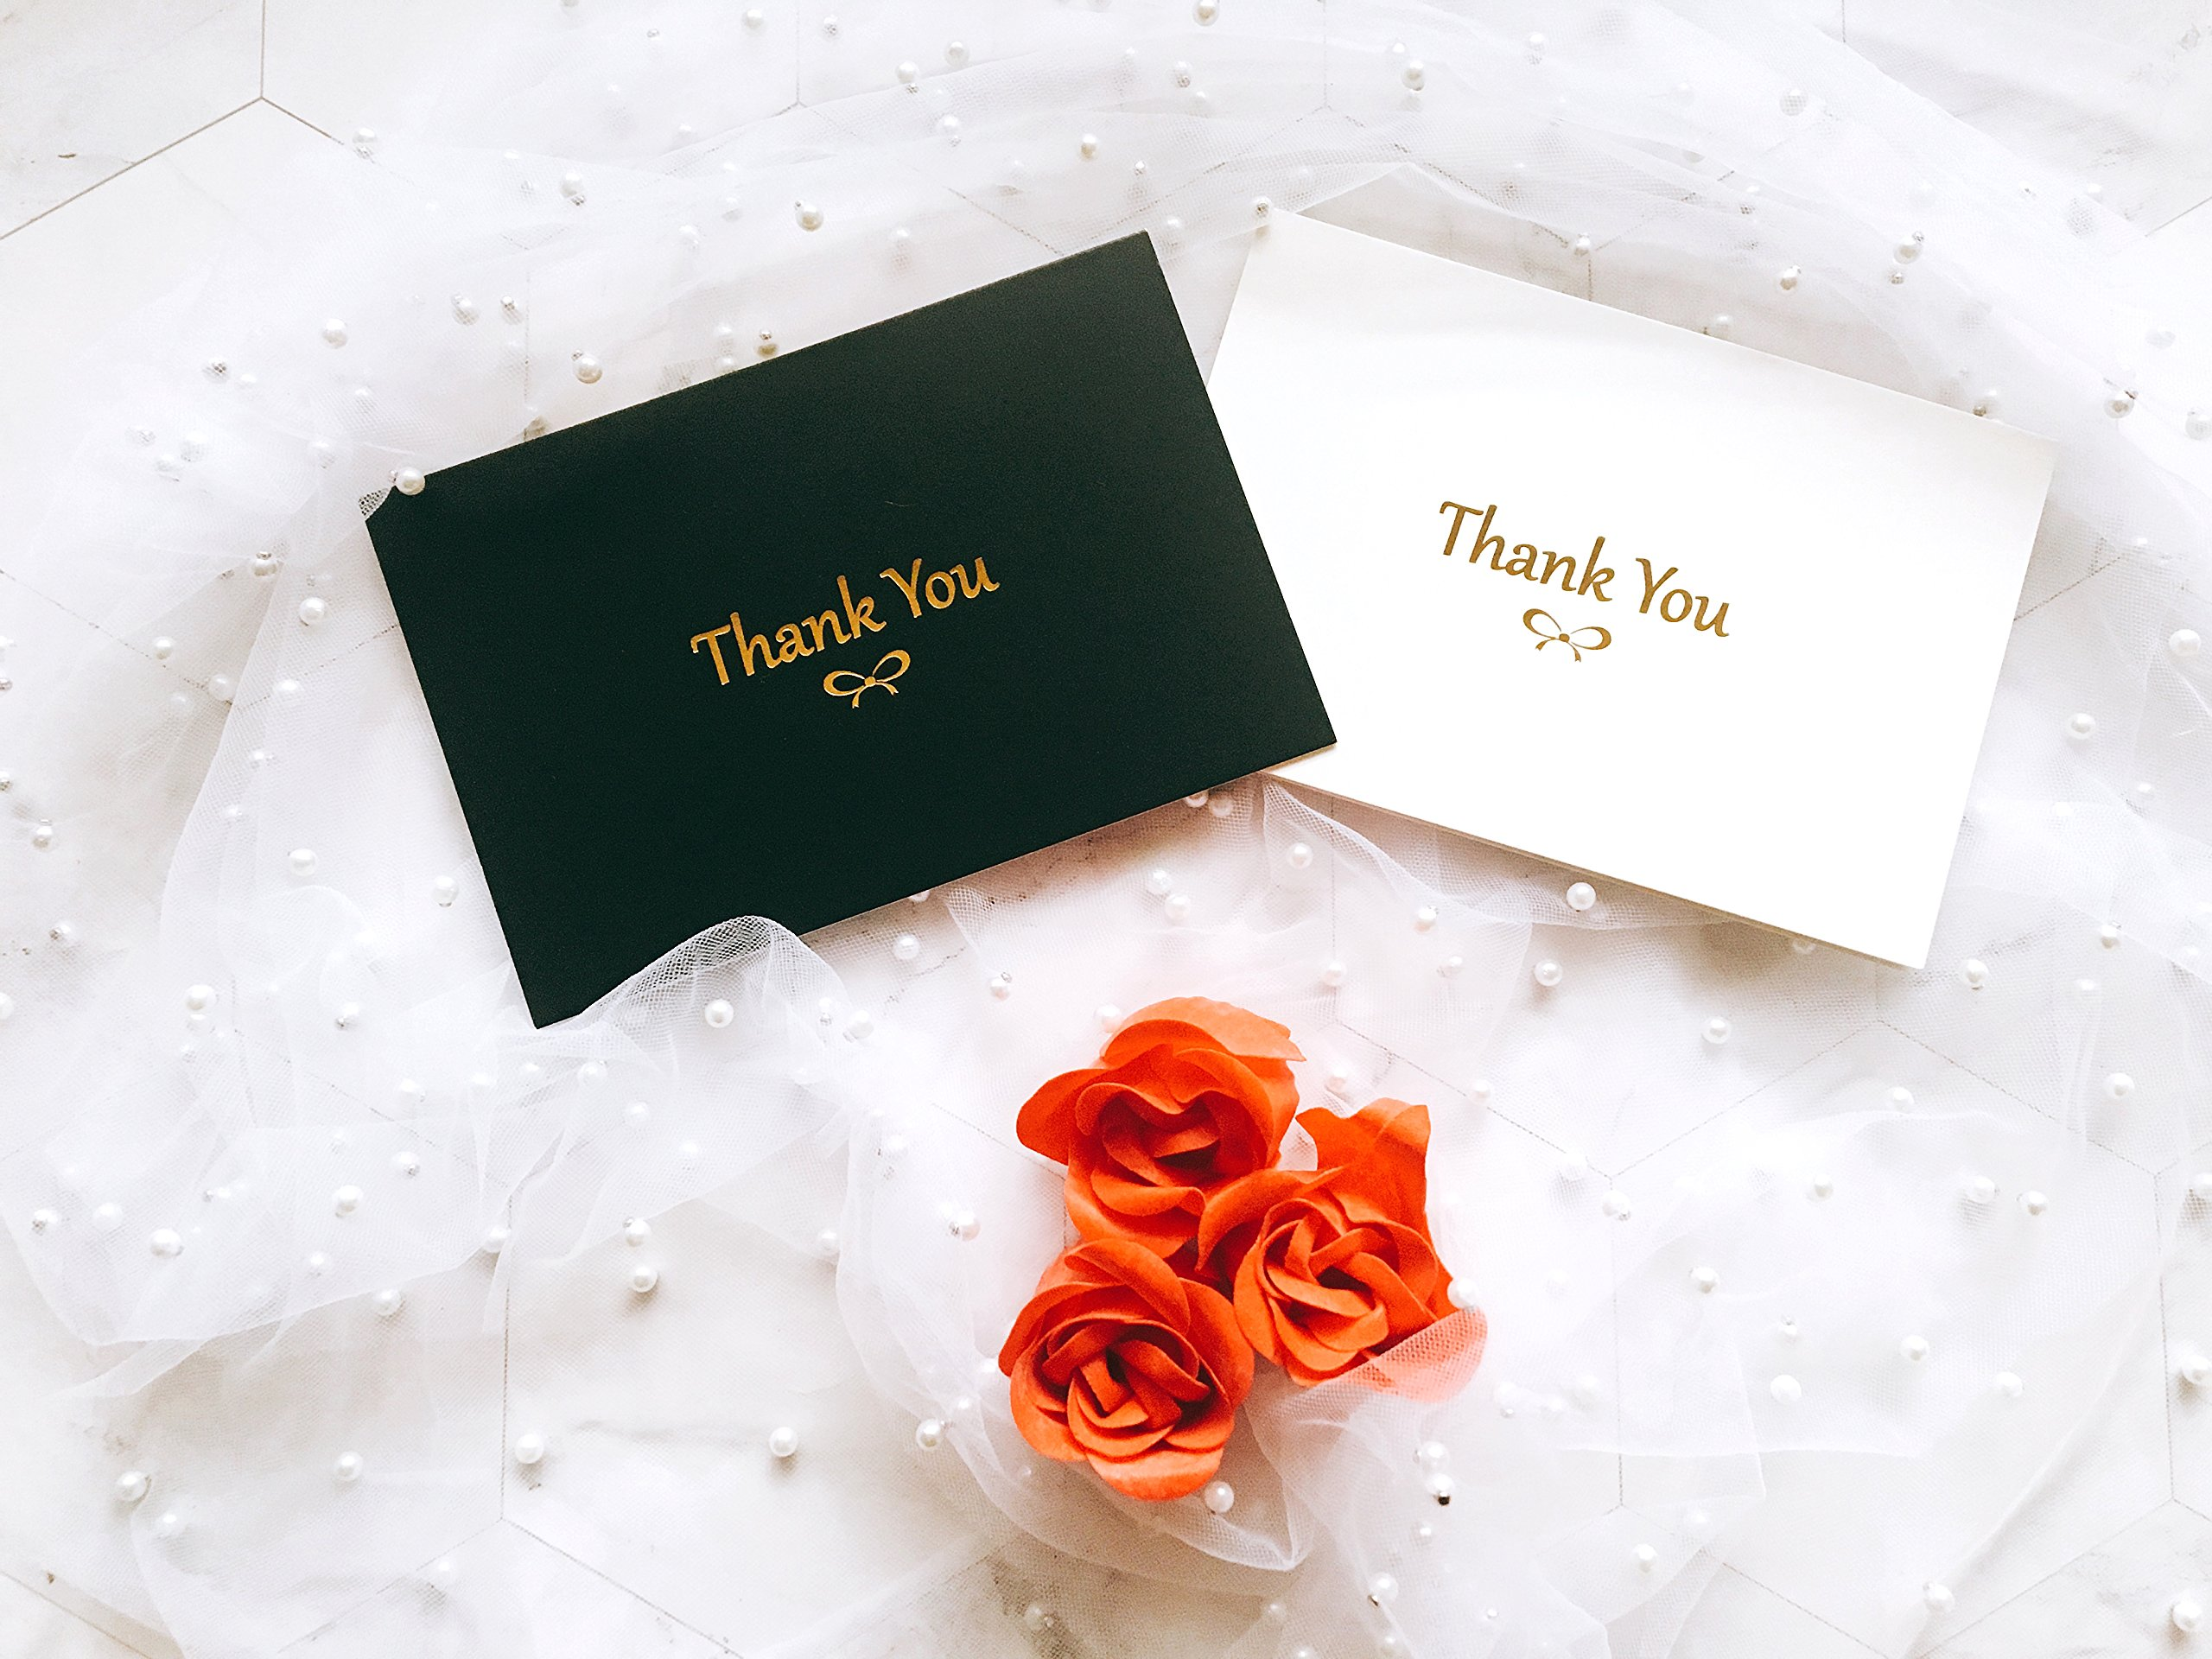 100 Thank You Cards With Gold Foil Embossed Designs | 4 x 6 Inches, Bulk Blank Note Cards With Envelopes And Gold Stickers | Perfect For Wedding, Bridal Shower, Baby Shower, and Business (Black White) by Winoo Paper Greetings (Image #5)